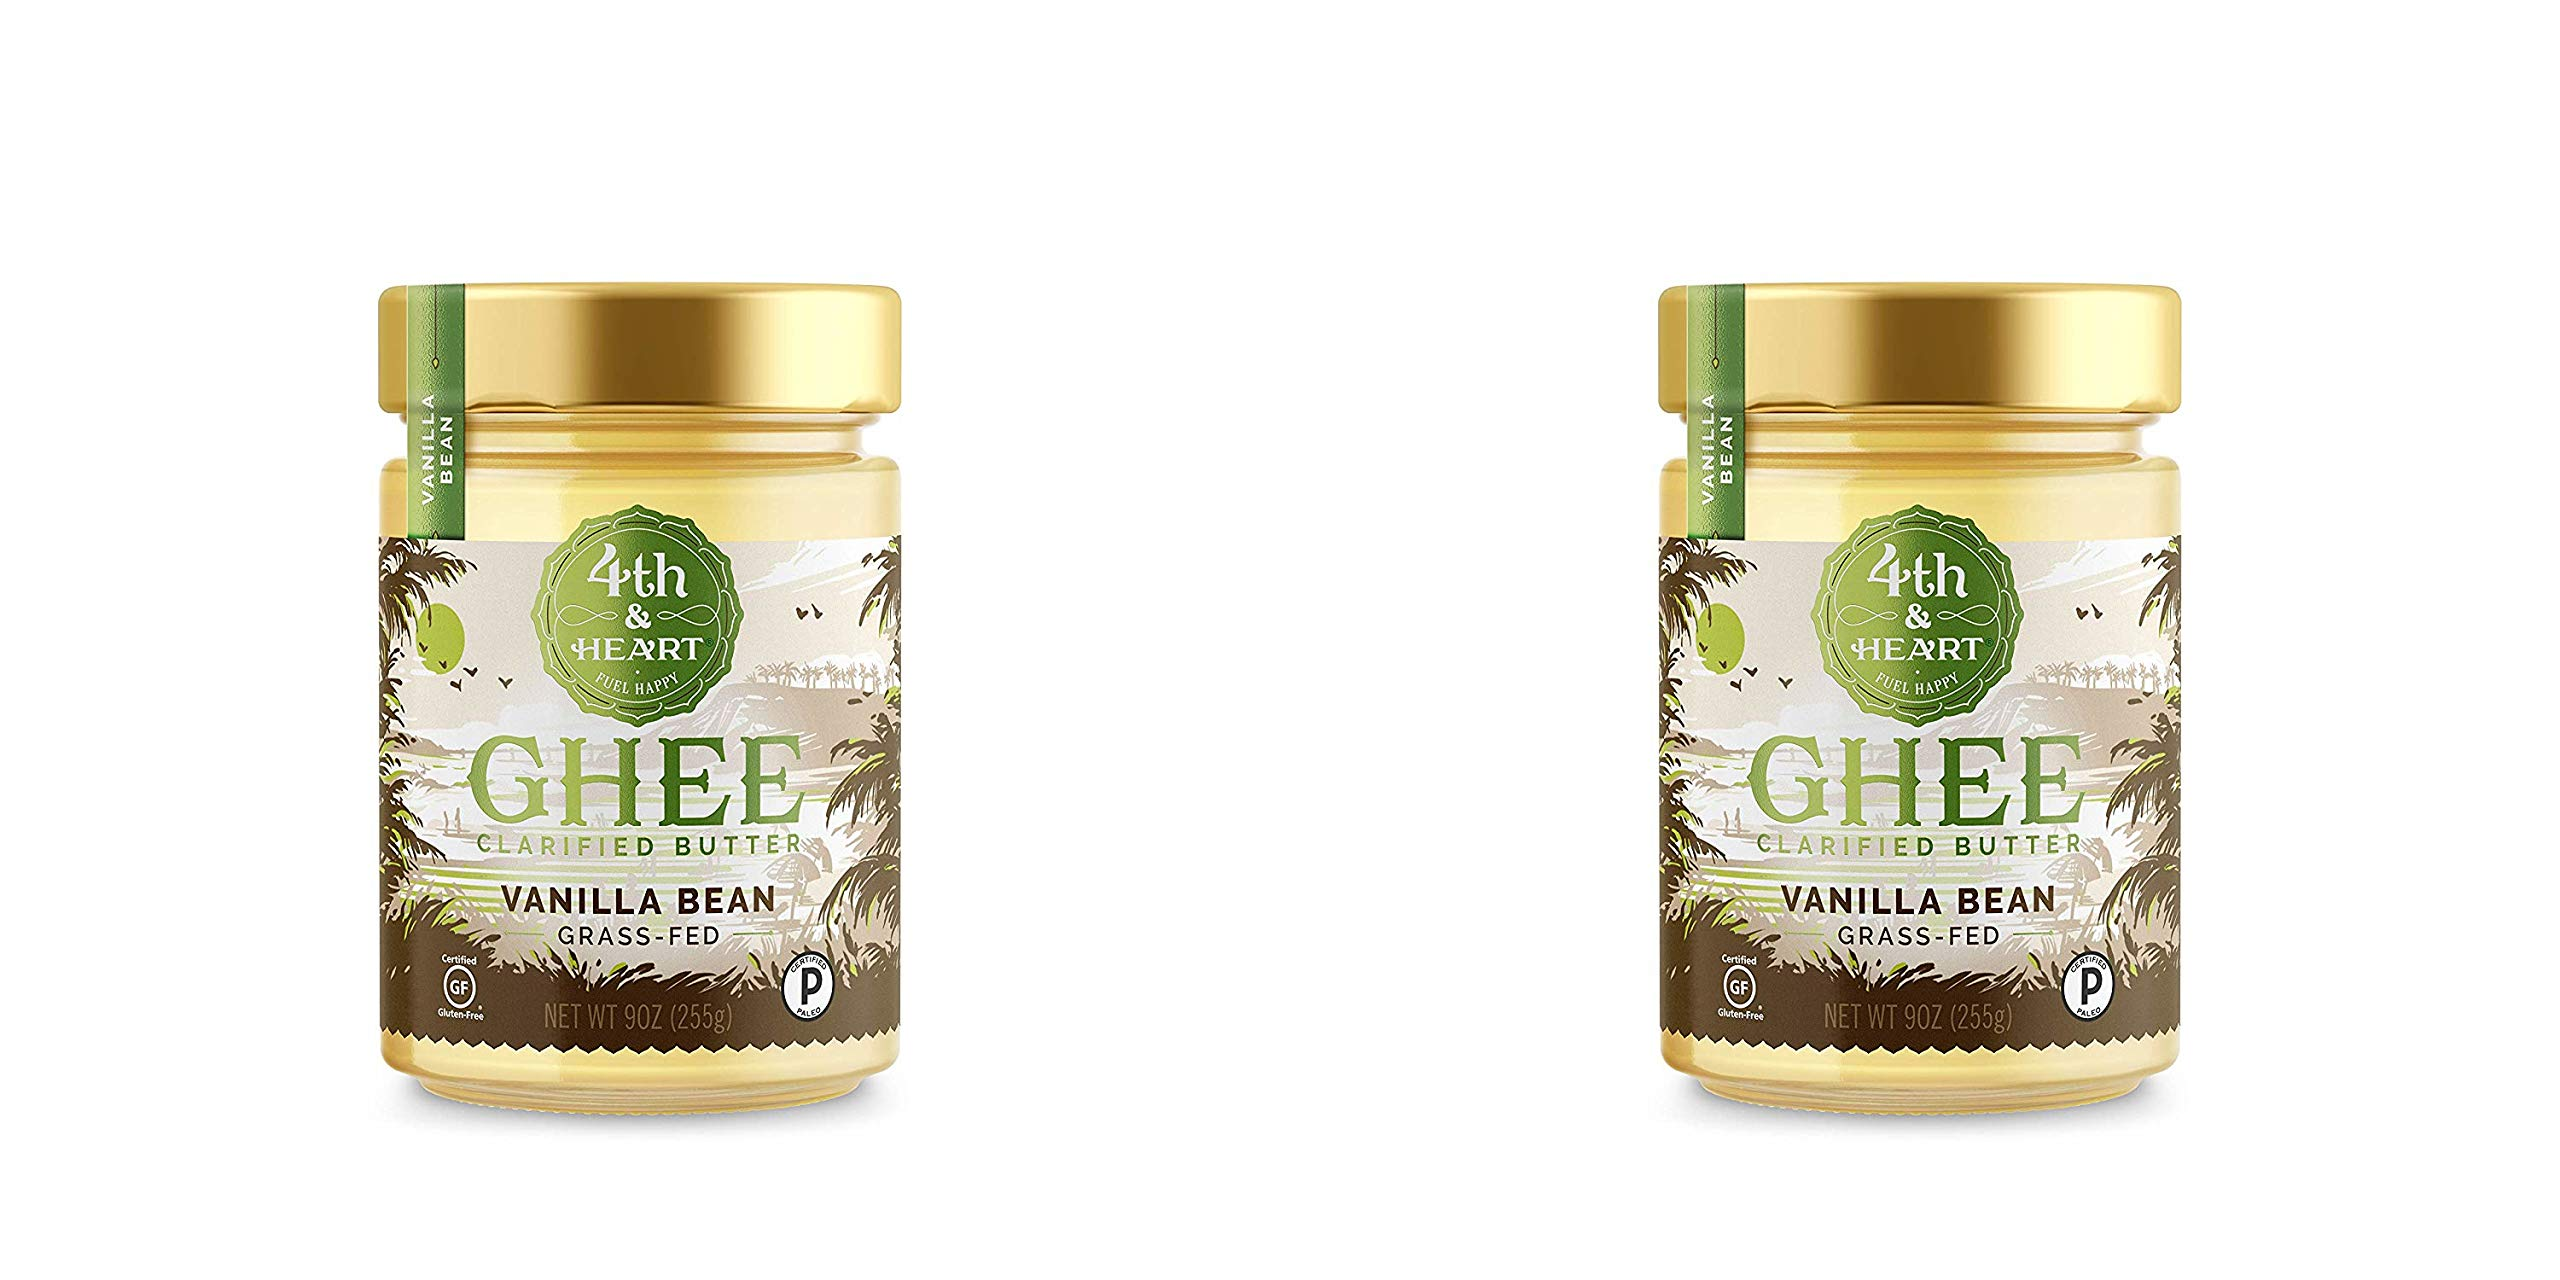 Vanilla Bean Grass-Fed Ghee Butter by 4th & Heart, 9 Ounce, Pasture Raised, Non-GMO, Lactose Free, Certified Paleo, Keto-Friendly - 2 Pack